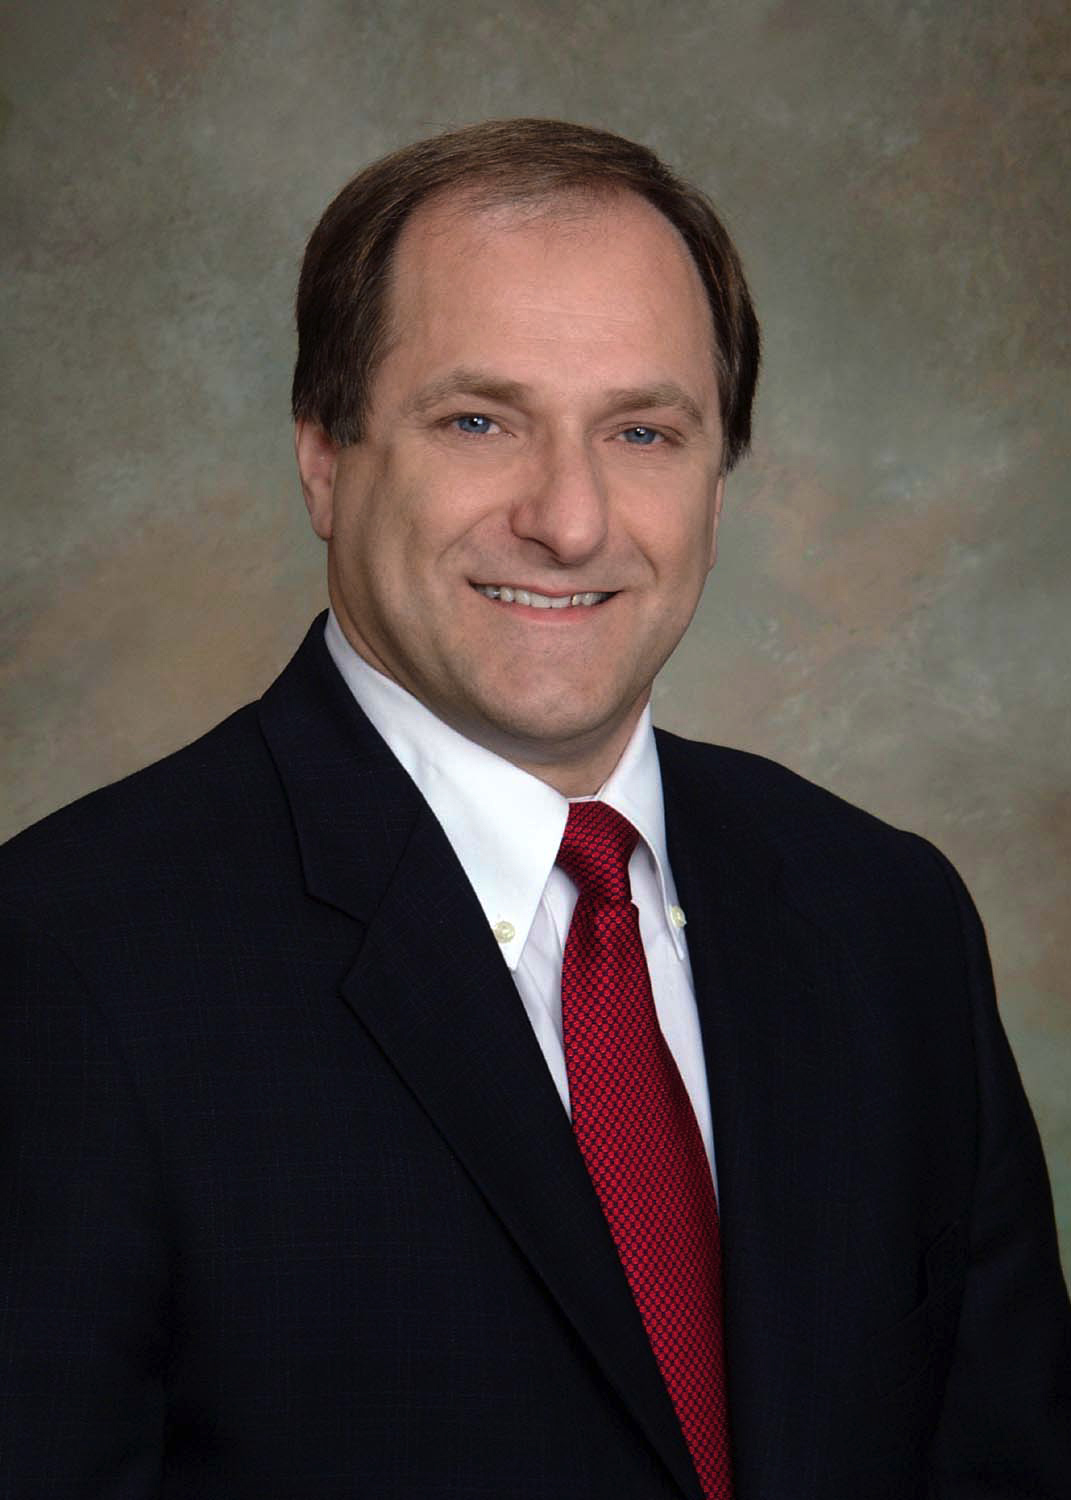 Mike Capuano, who served as the U.S. Representative for Massachusetts' 7th District from 1998 until losing the seat in September ( source )